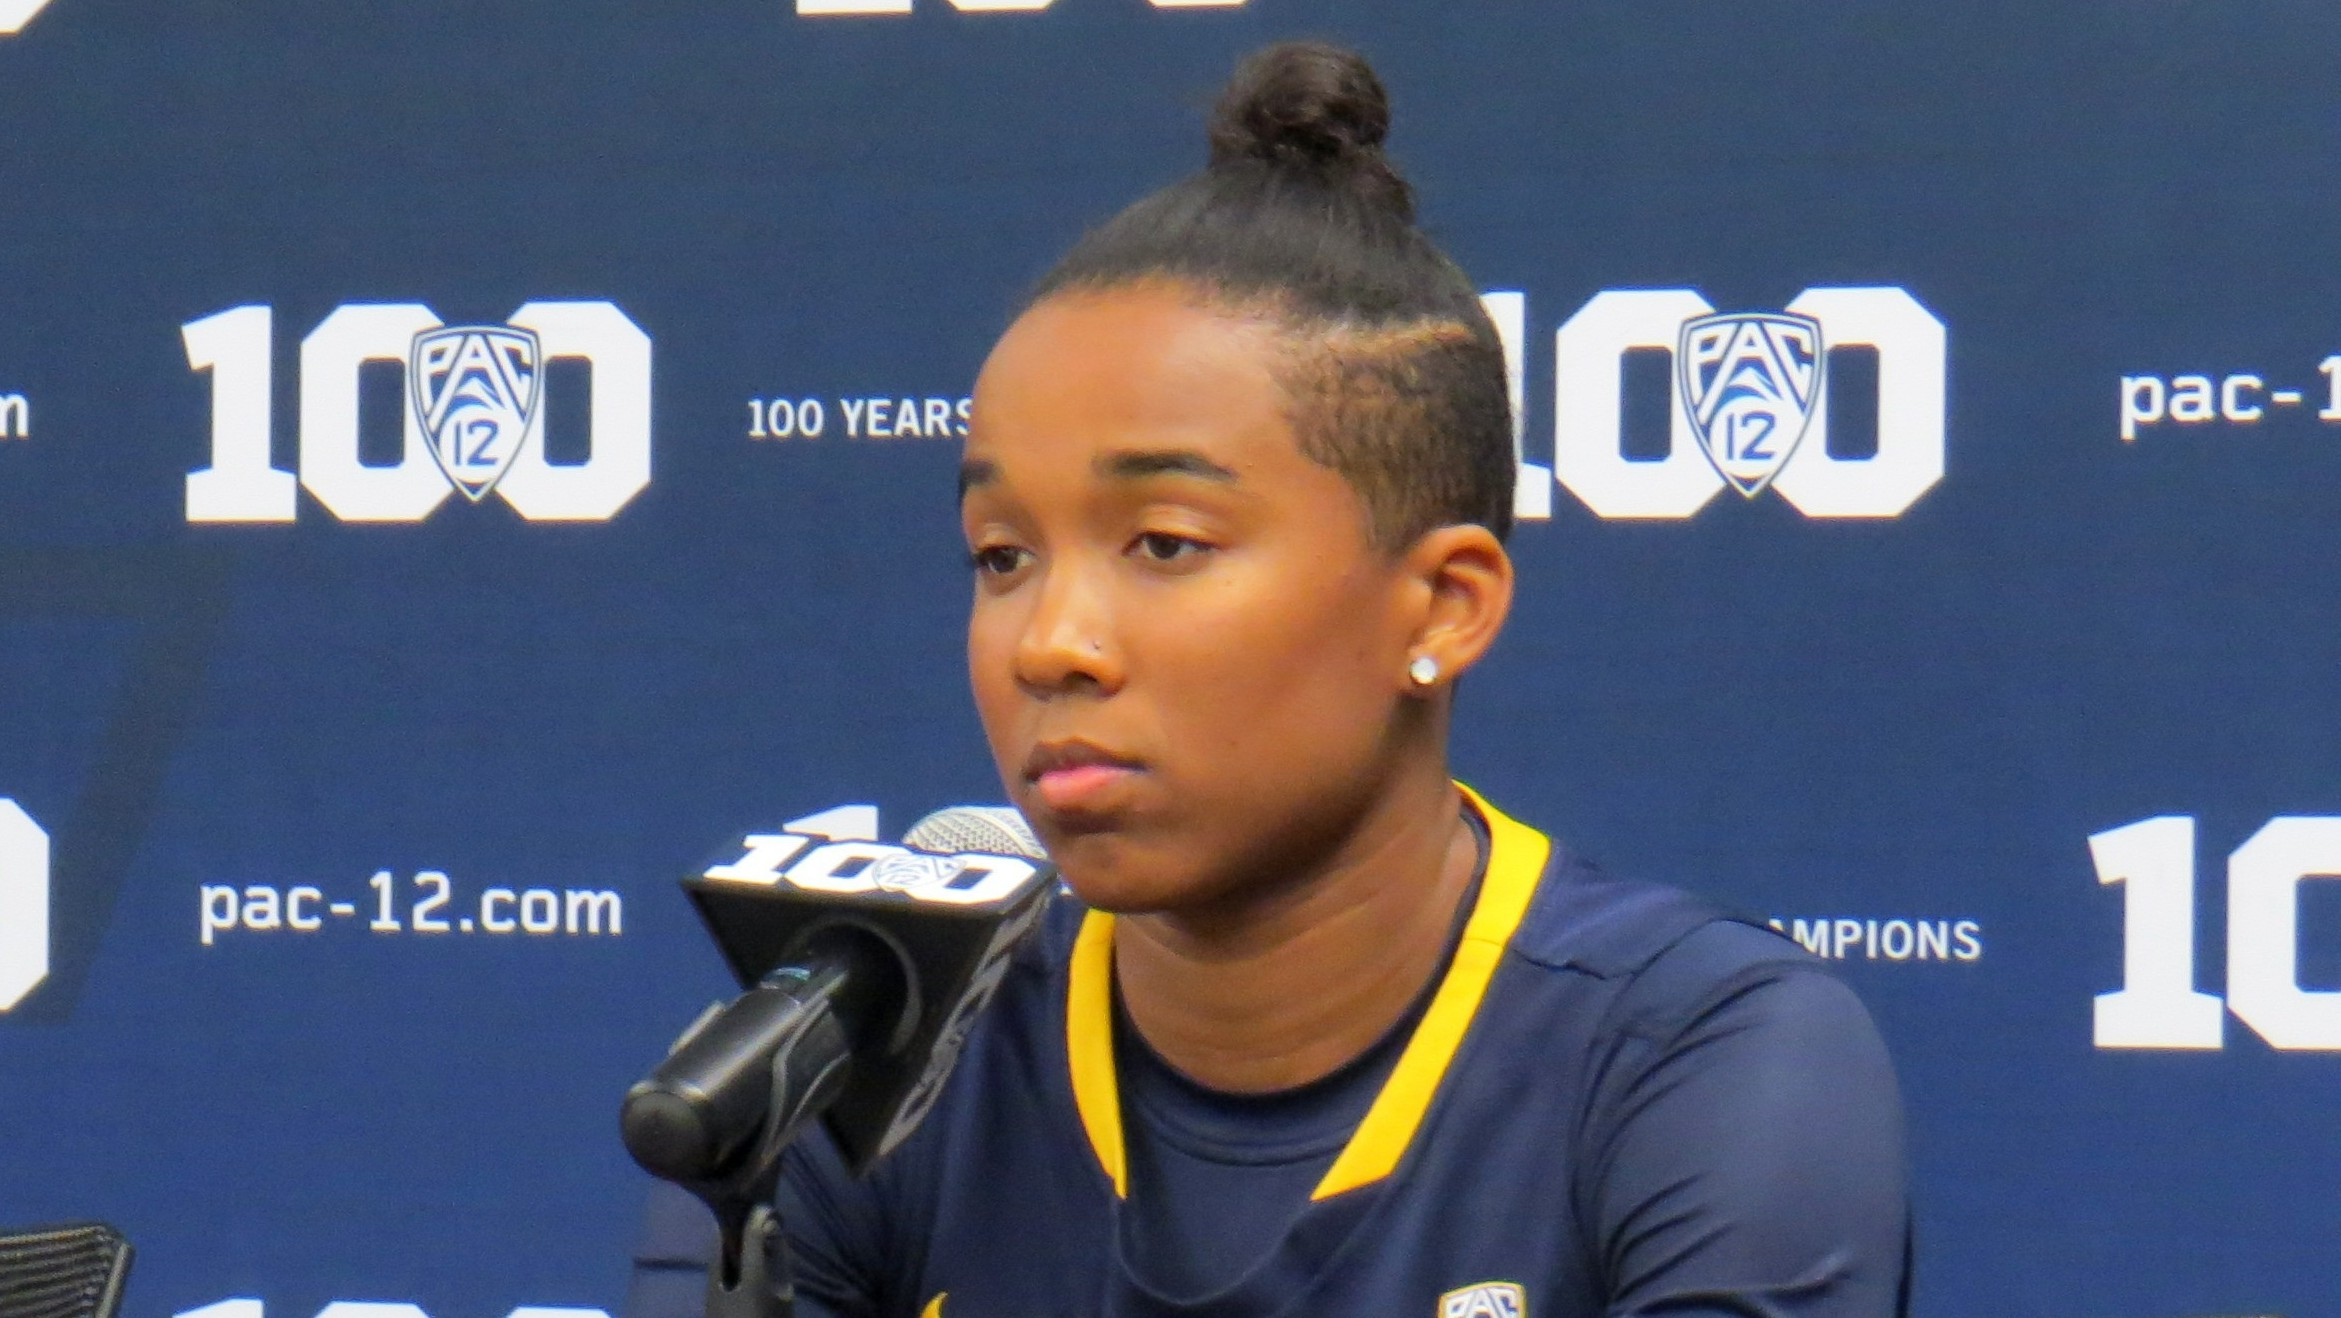 Cal resets for 2015-16 with Mikayla Cowling poised for a leadership role